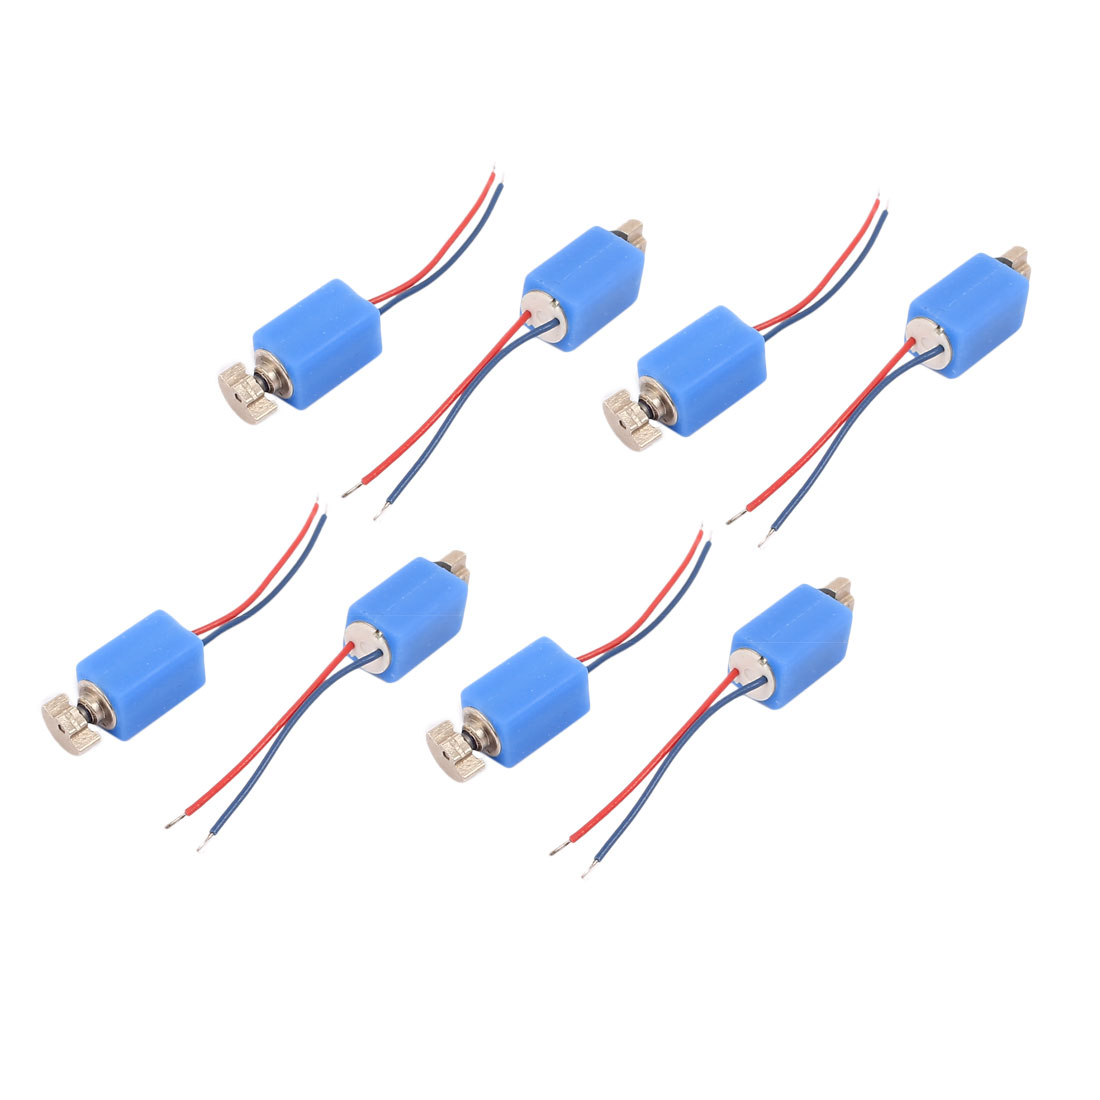 8 Pcs DC 3V 4 x 8mm 3500RPM Mini Vibration Motor Blue for Cell Phone